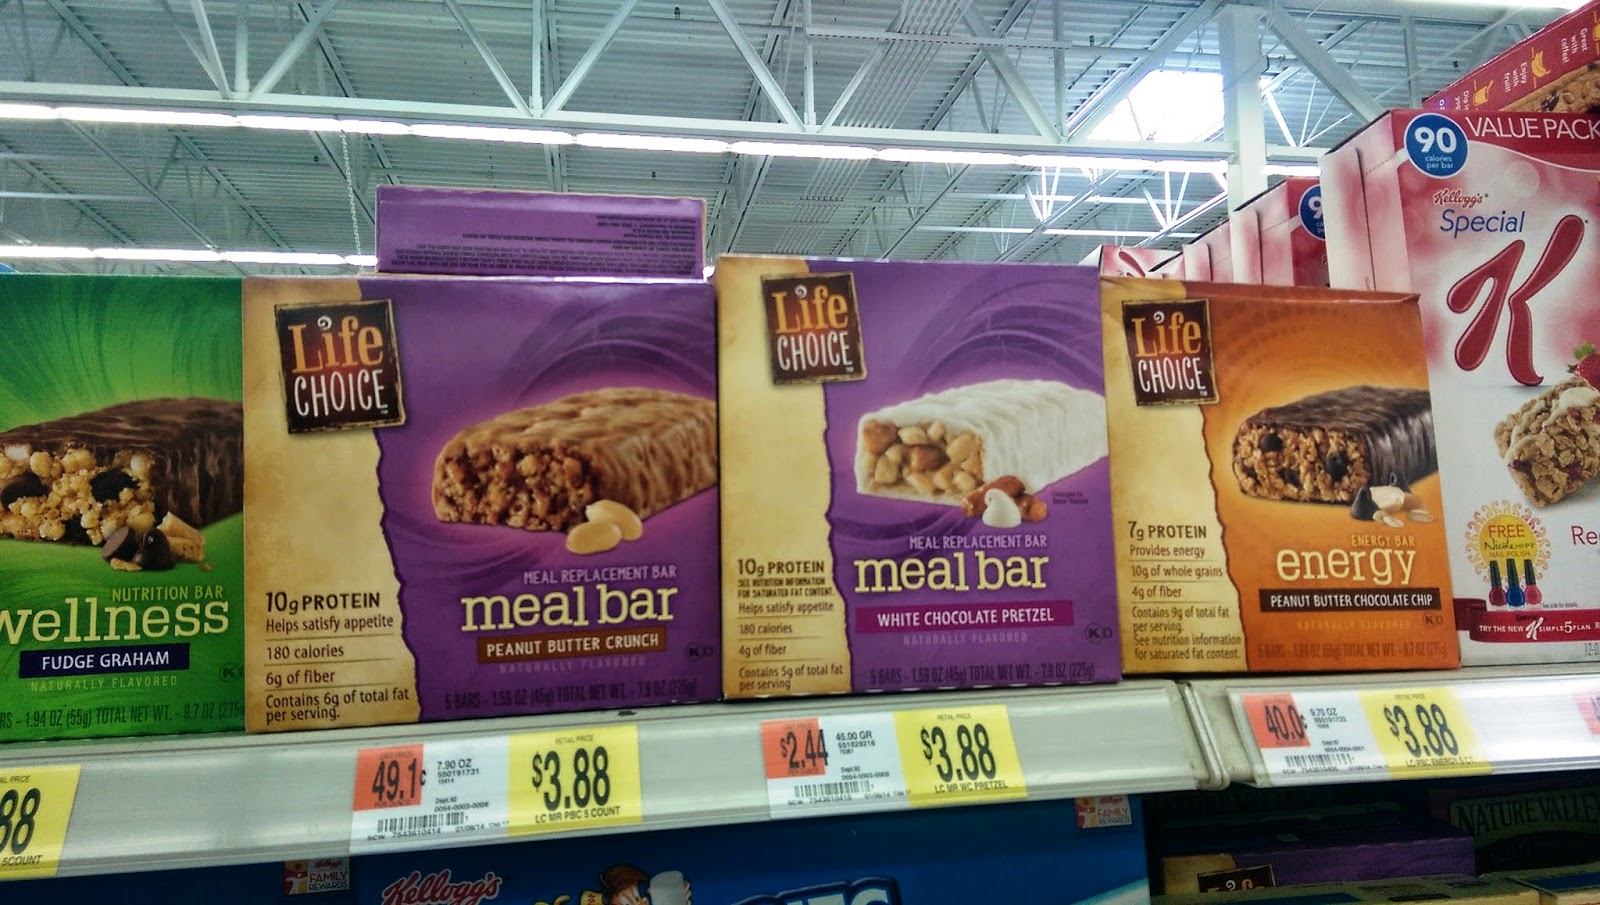 Life Choice Meal Bars